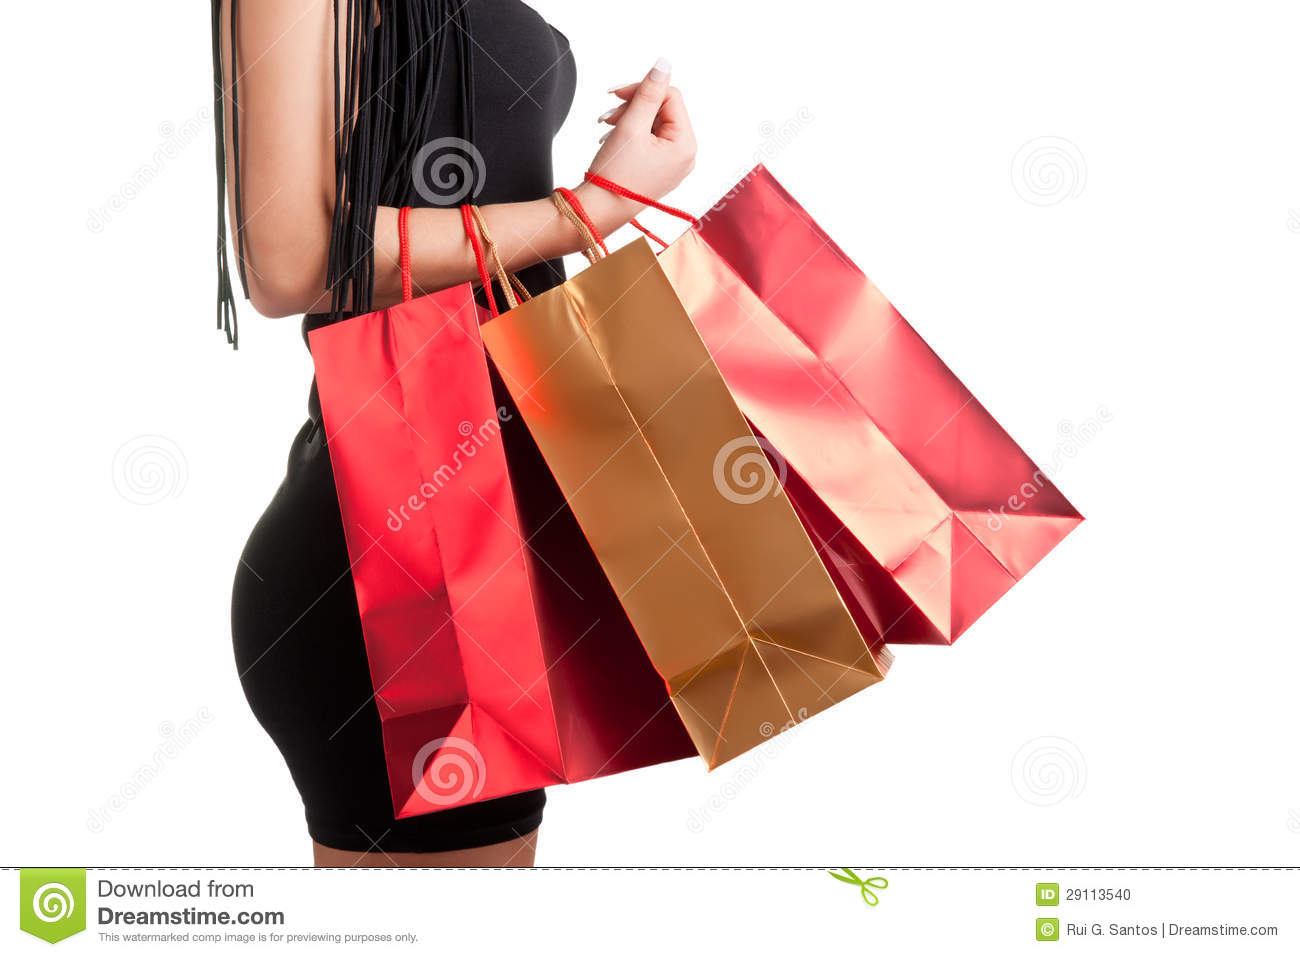 Woman Carrying Shopping Bags Stock Photo - Image: 29113540